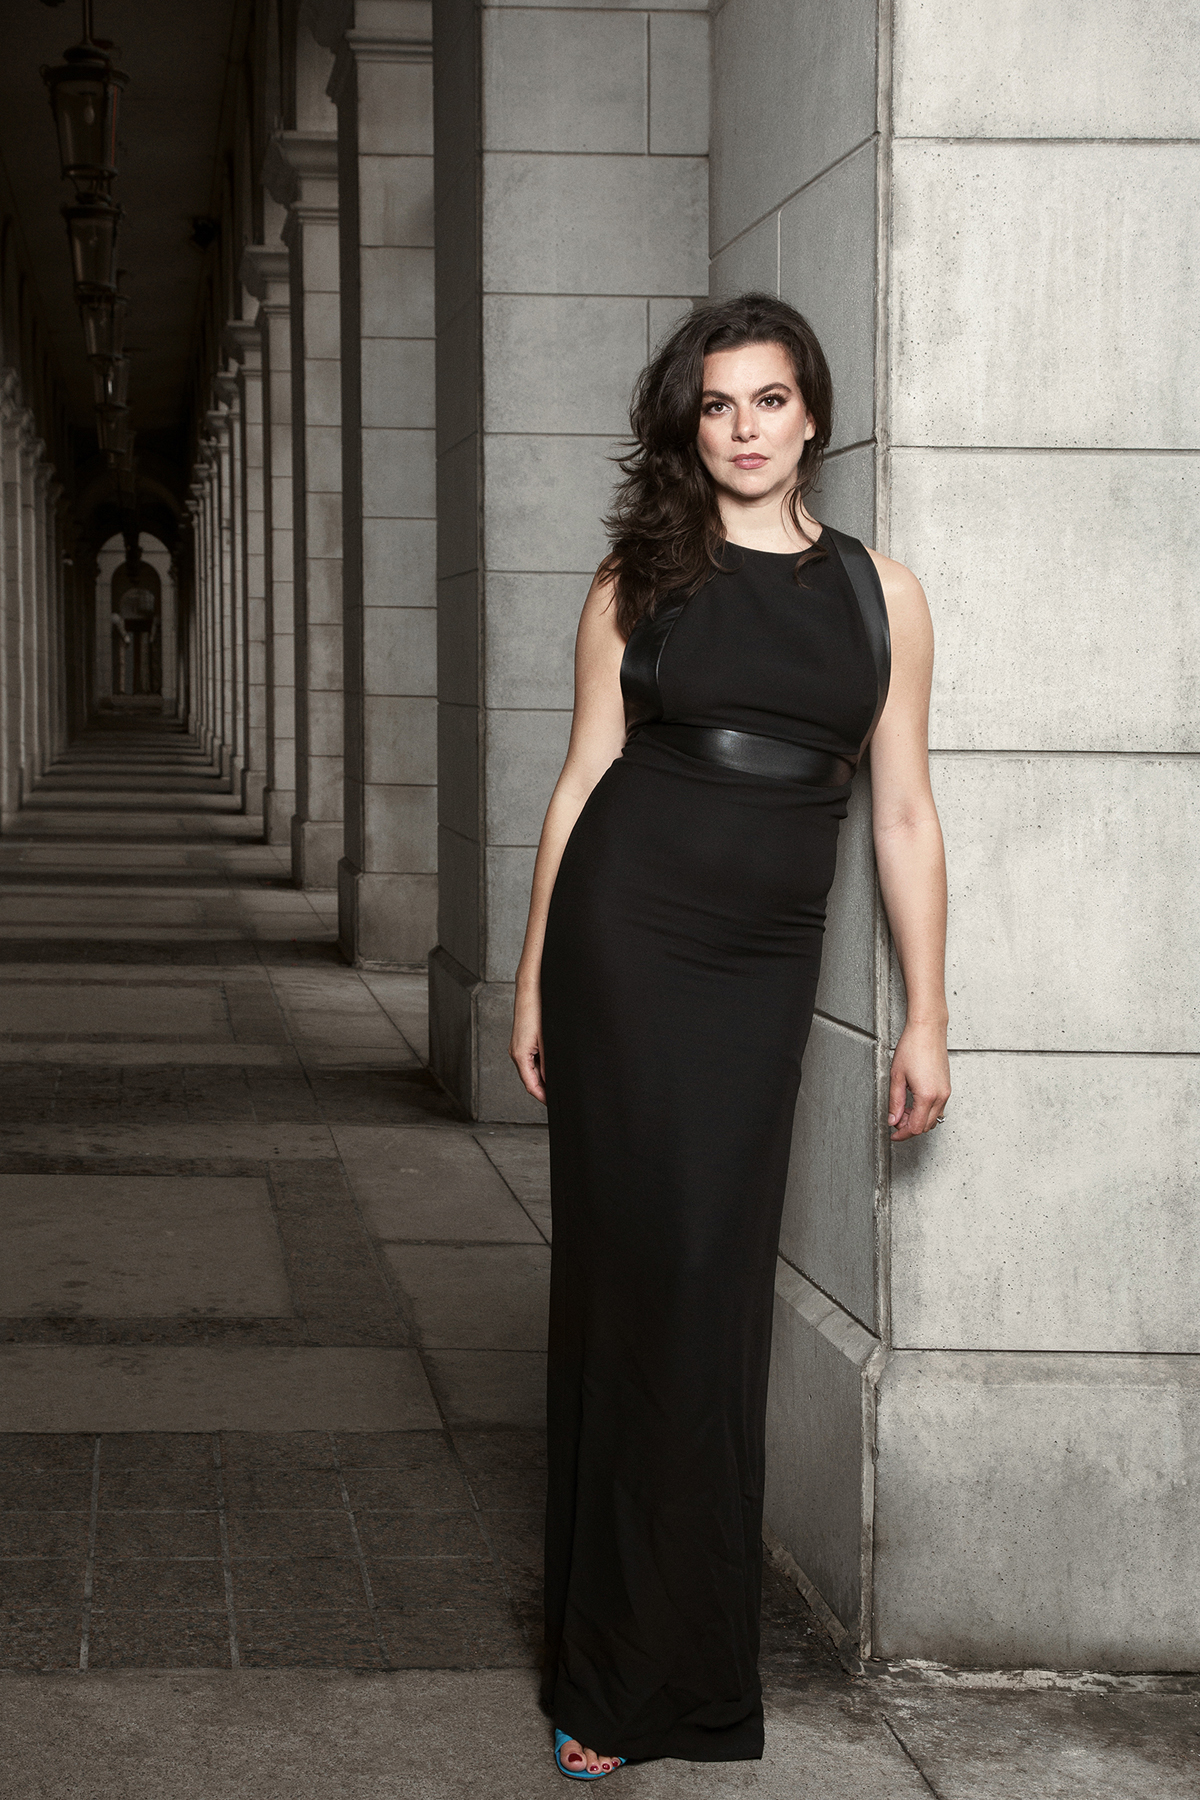 arias: canadian voices of opera